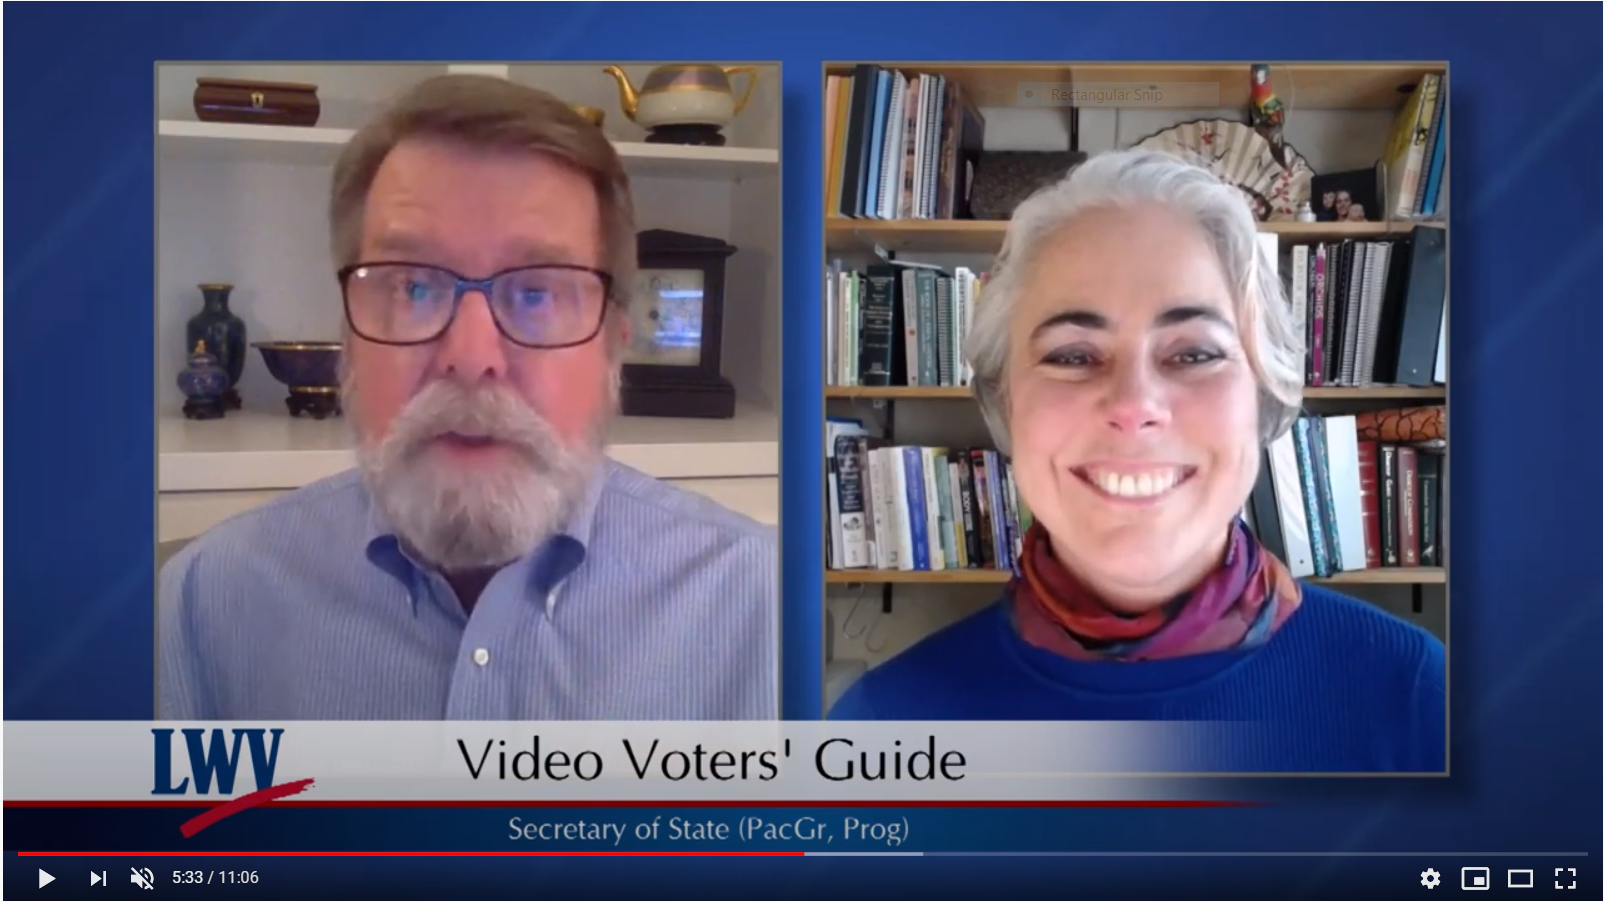 League of Women Voters Guide Video Interview